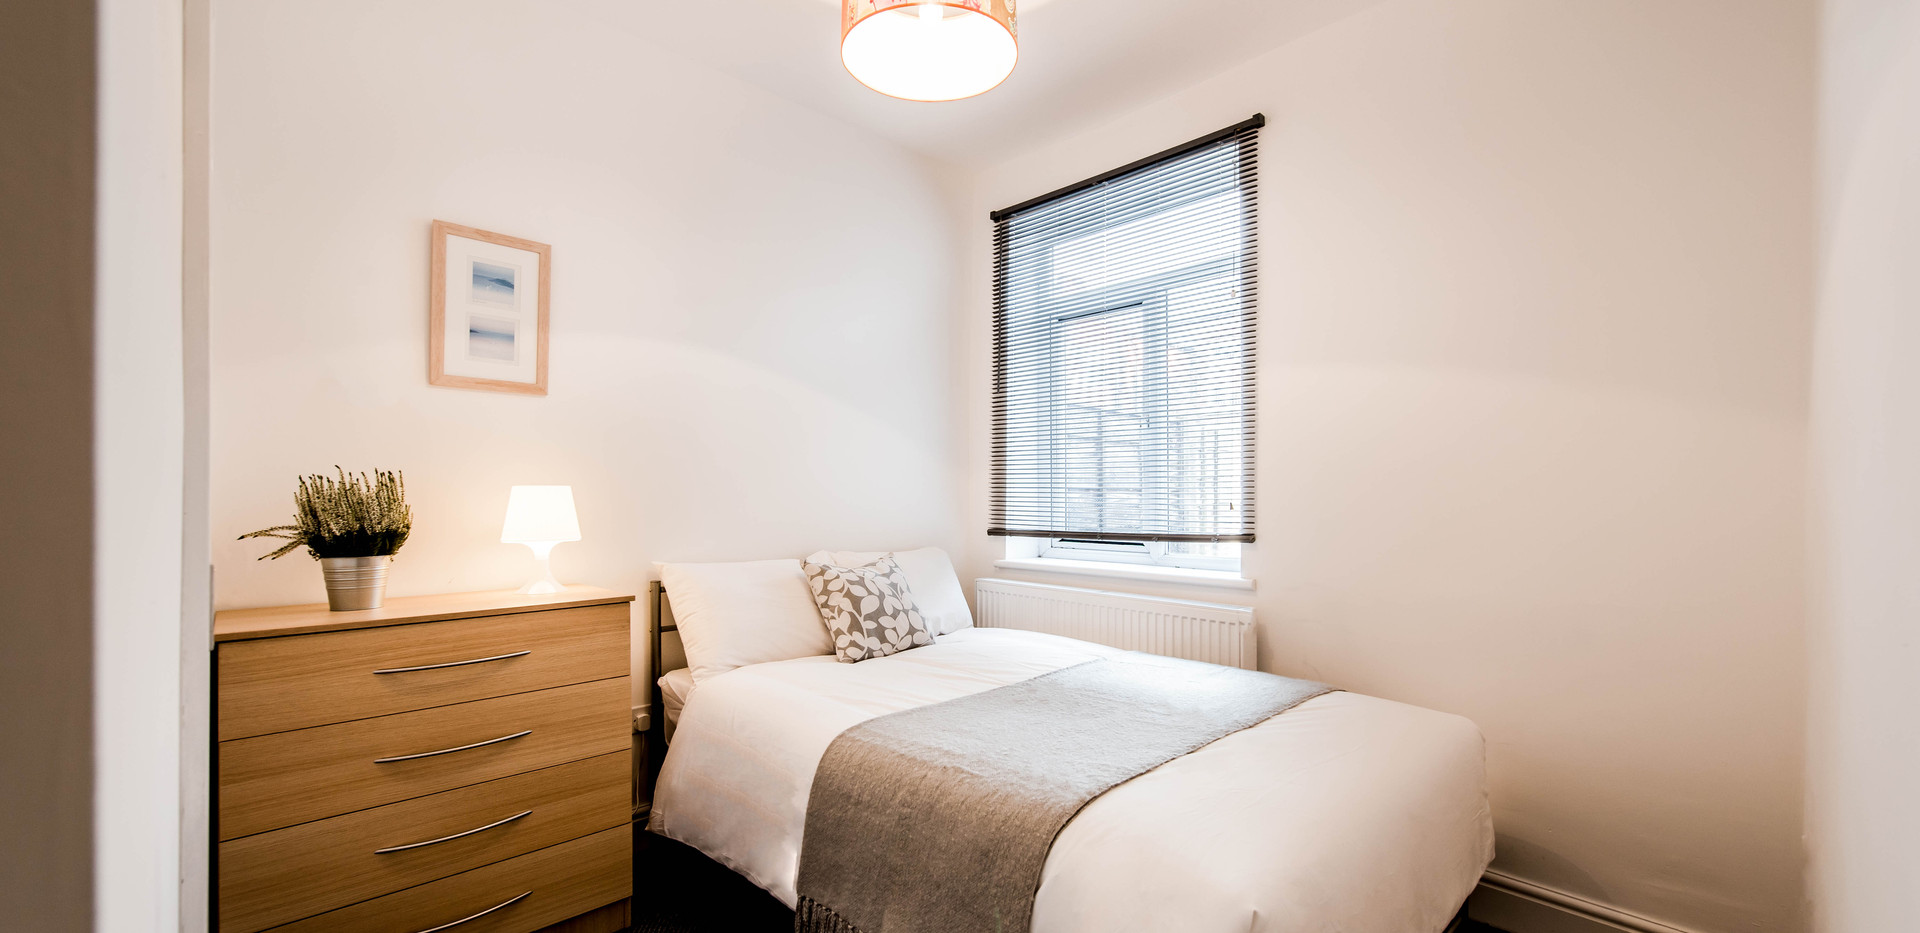 Room 2 at Mather Street